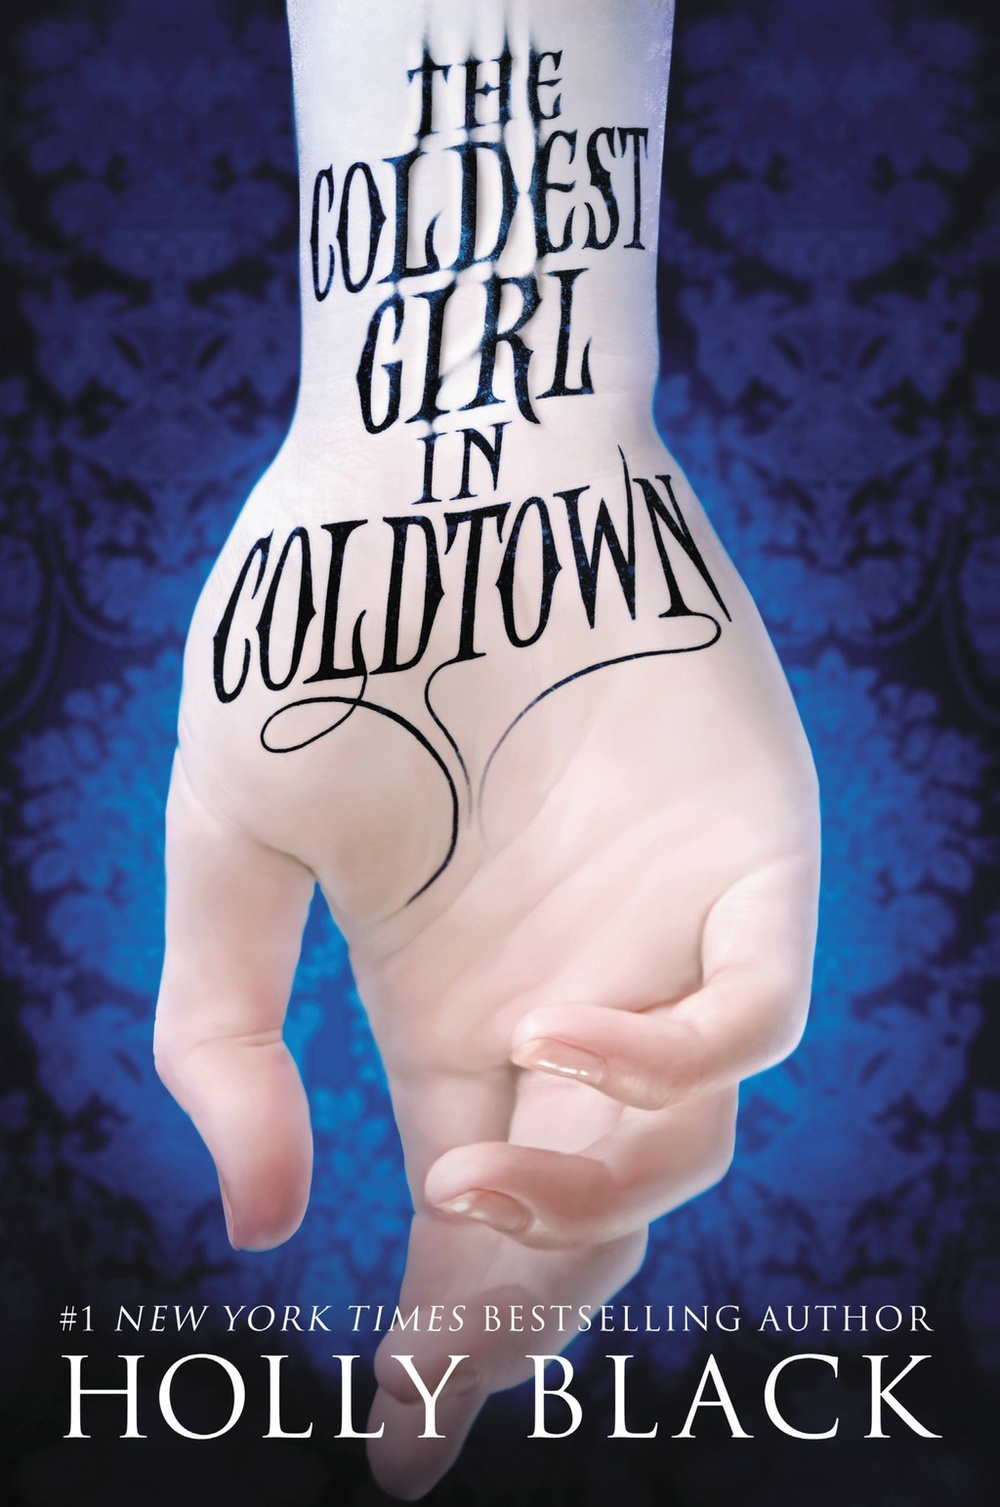 The Coldest Girl in Coldtown by Holly Black (Audio)  Amazon  |  Goodreads